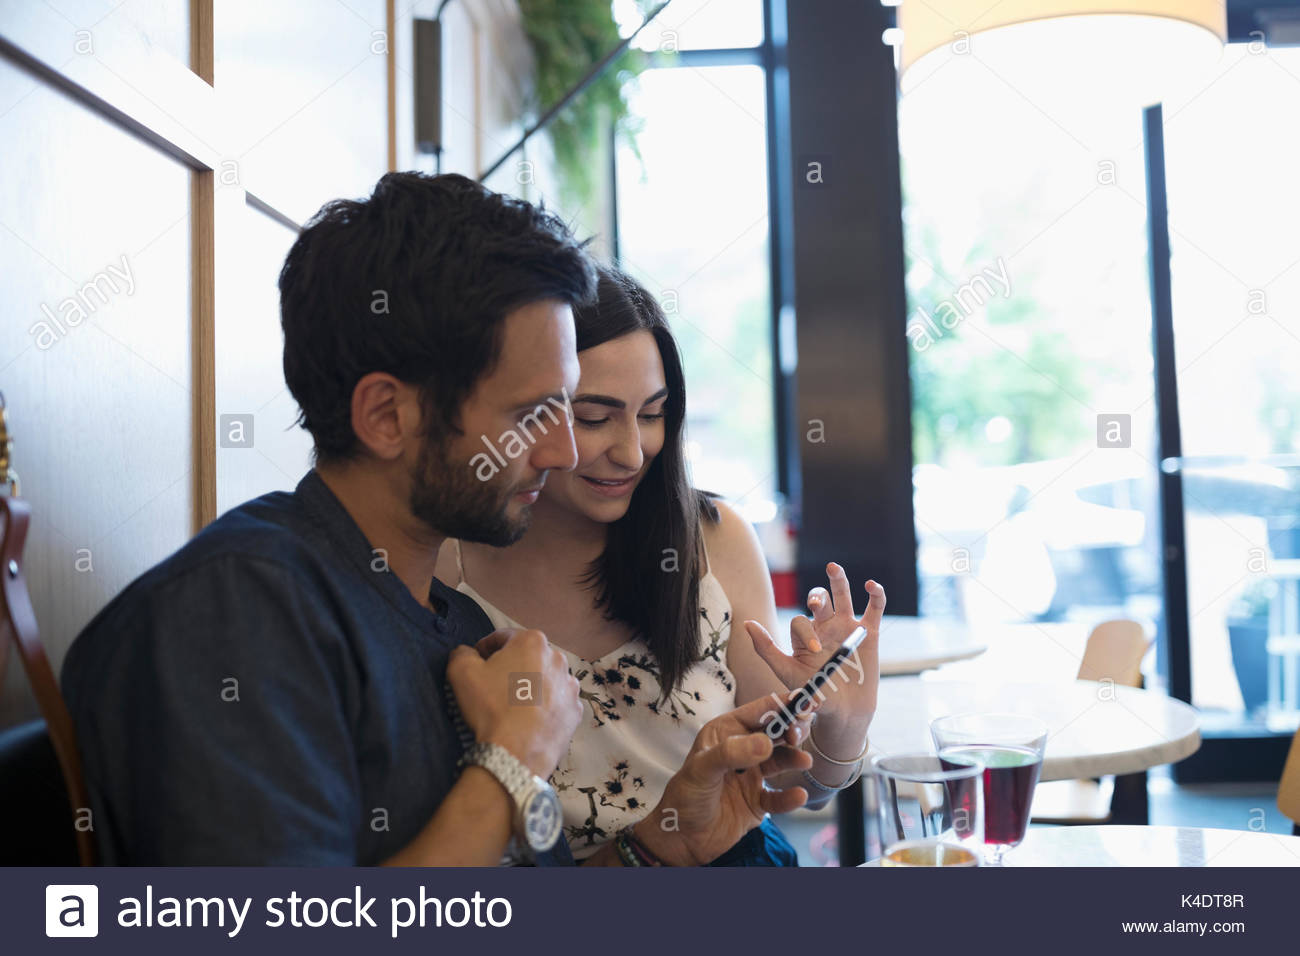 Couple using cell phone at cafe table - Stock Image